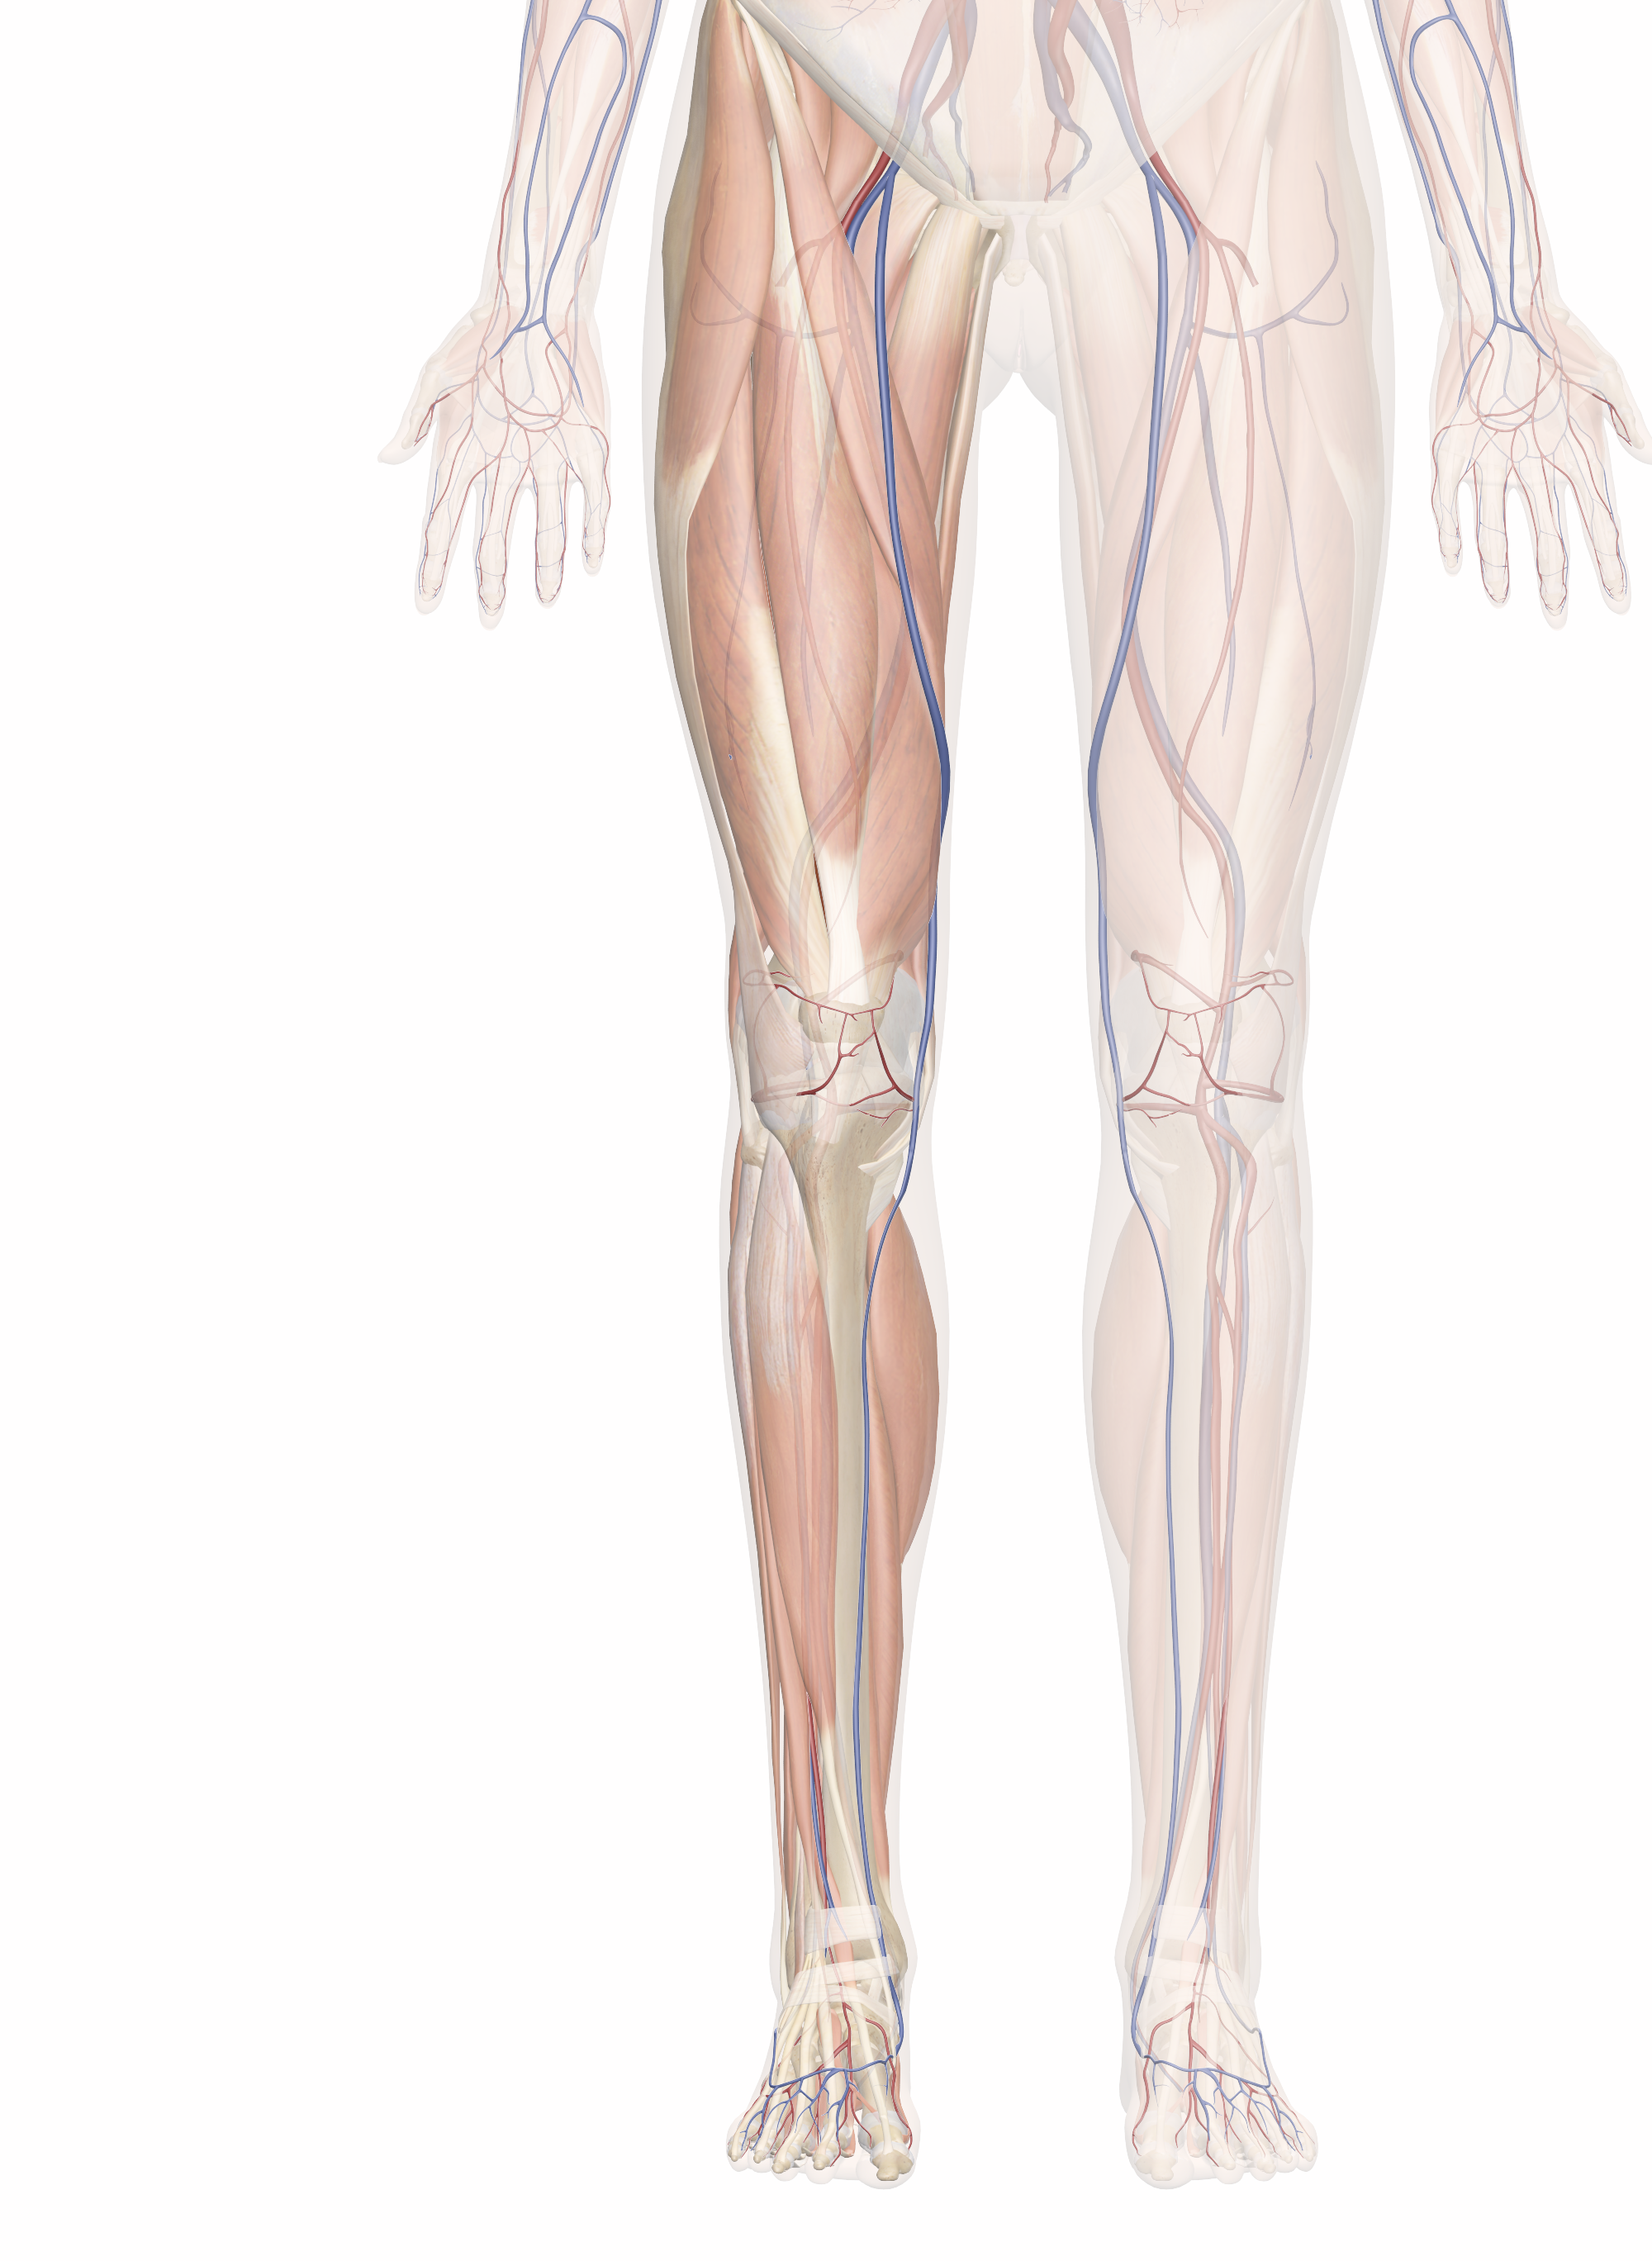 Conditions of Legs